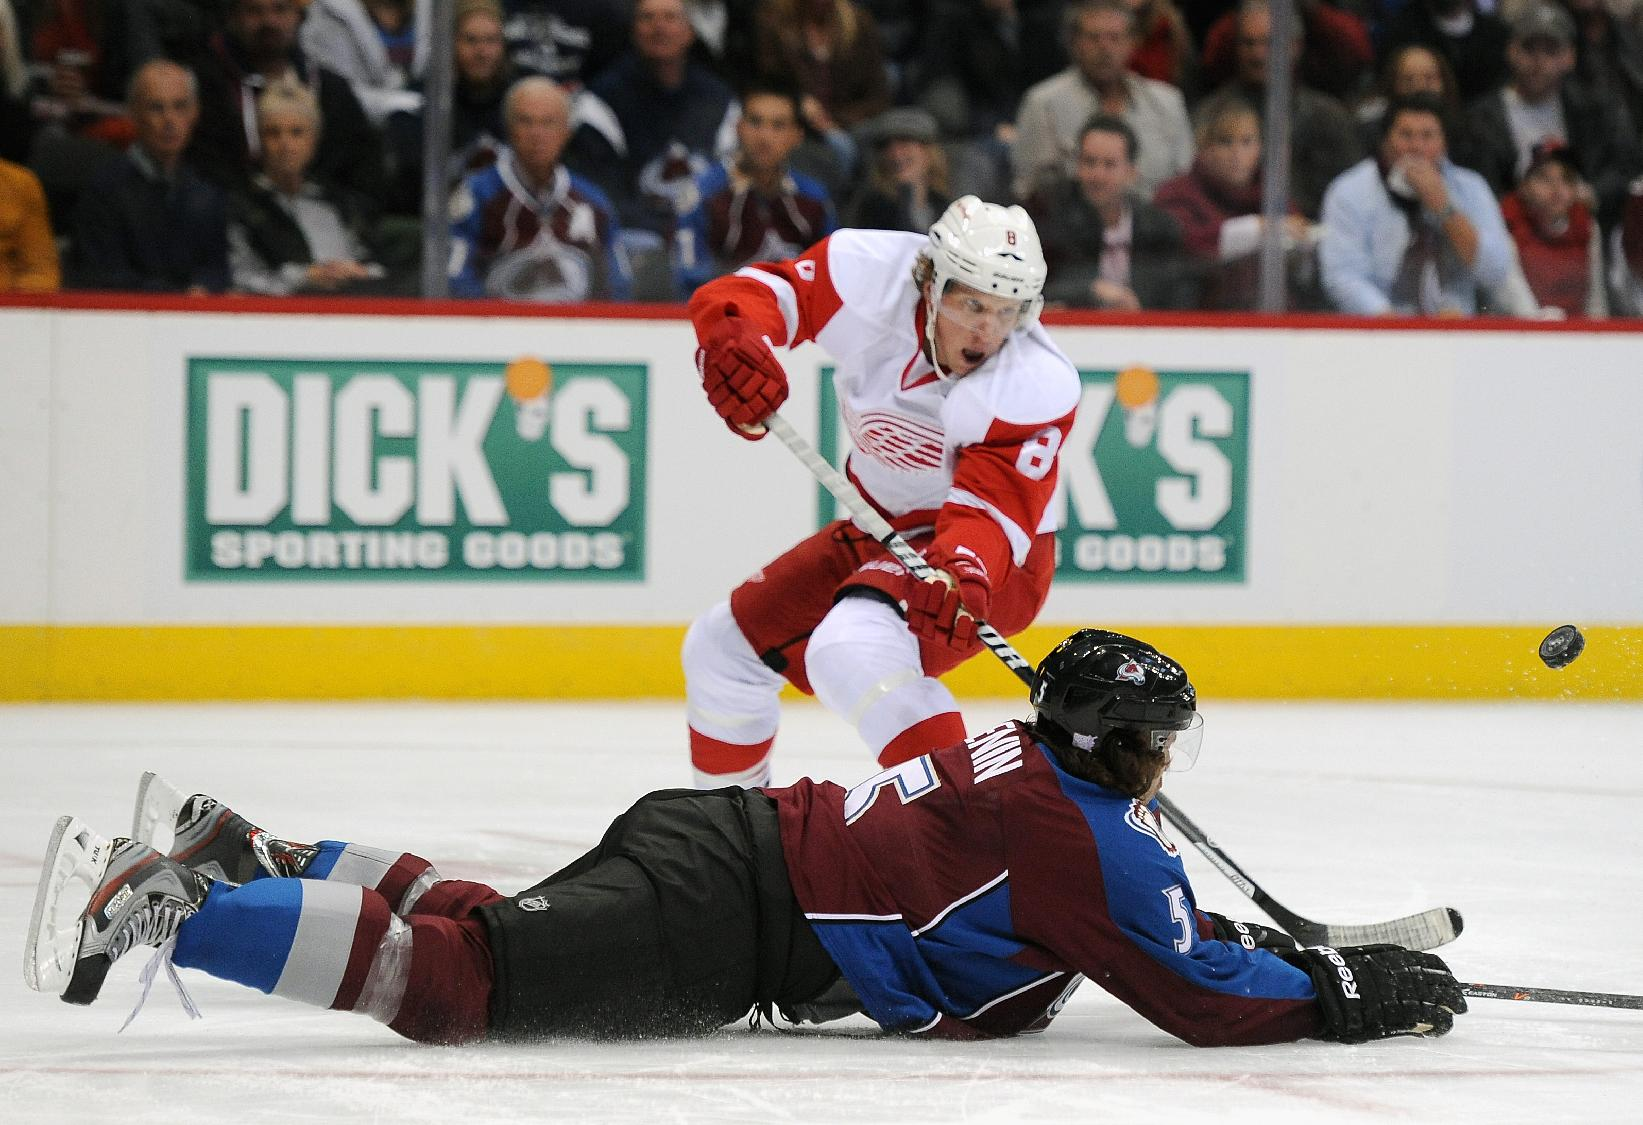 Colorado Avalanche defenseman Nate Guenin, front, lays out to block a shot by Detroit Red Wings left wing Justin Abdelkader, rear, in the second period of an NHL hockey game Thursday, Oct. 17, 2013, in Denver